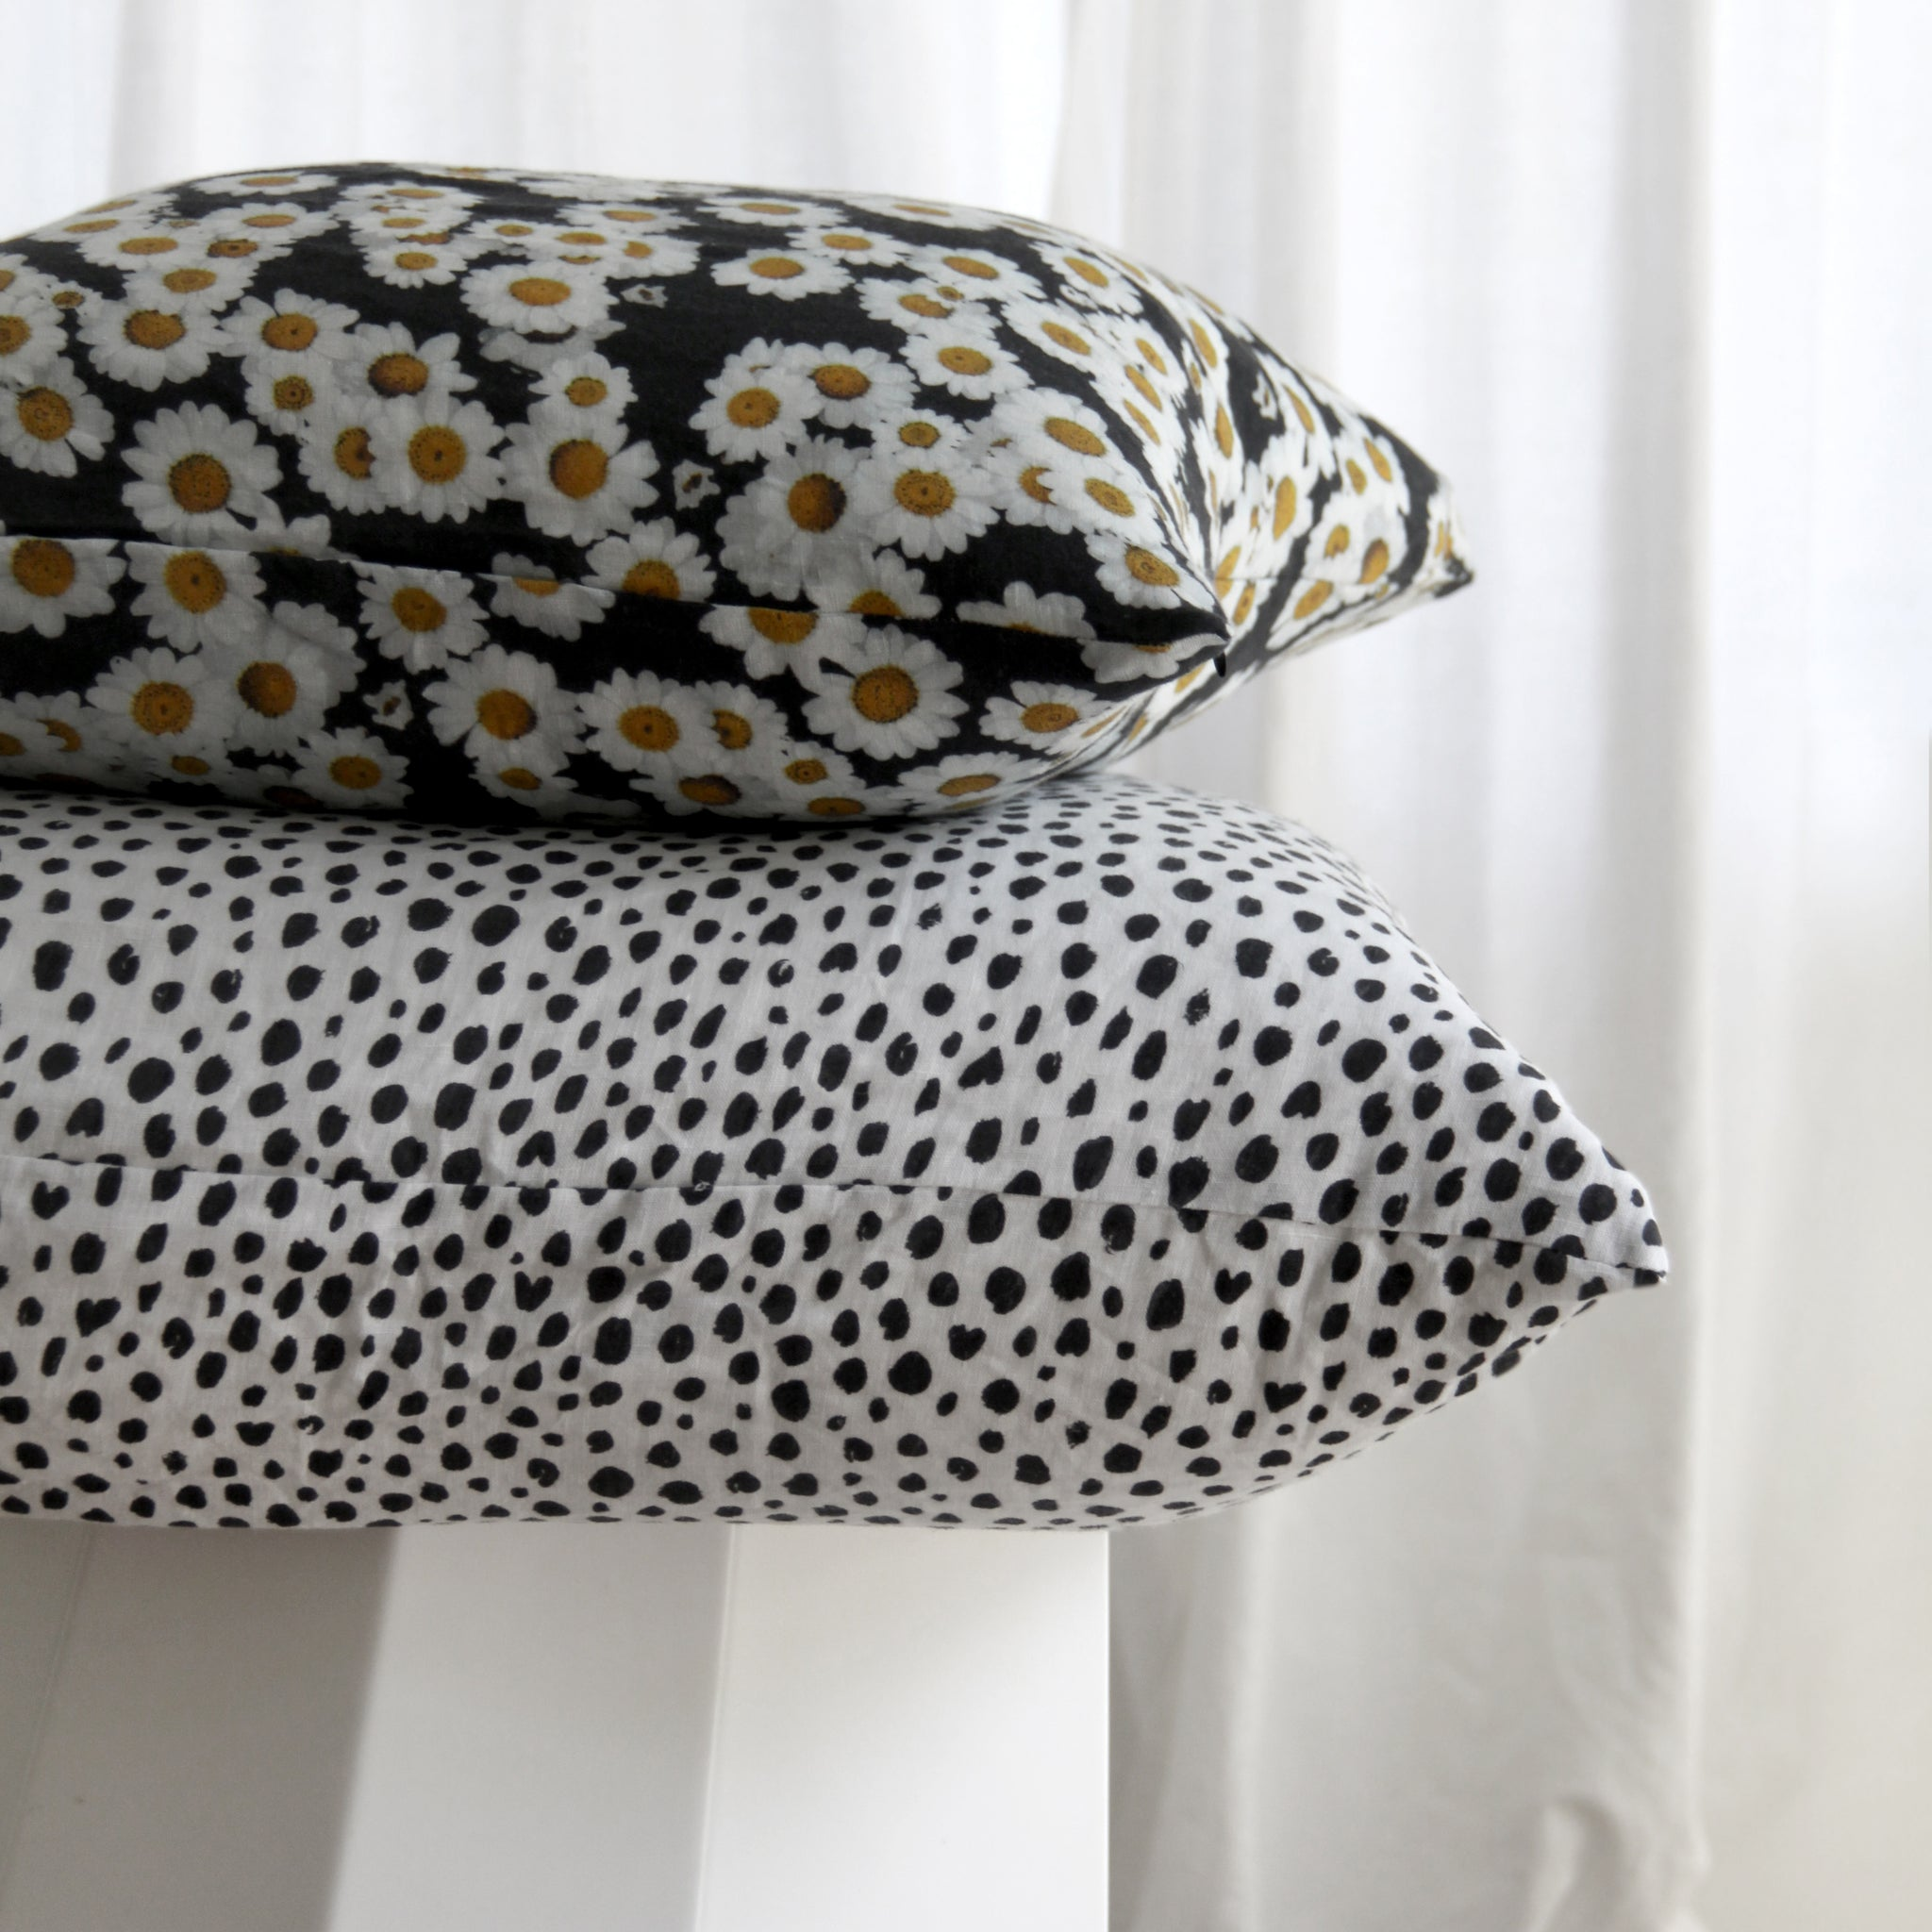 homebody printed linen stack of cushions with daisy and animal print design